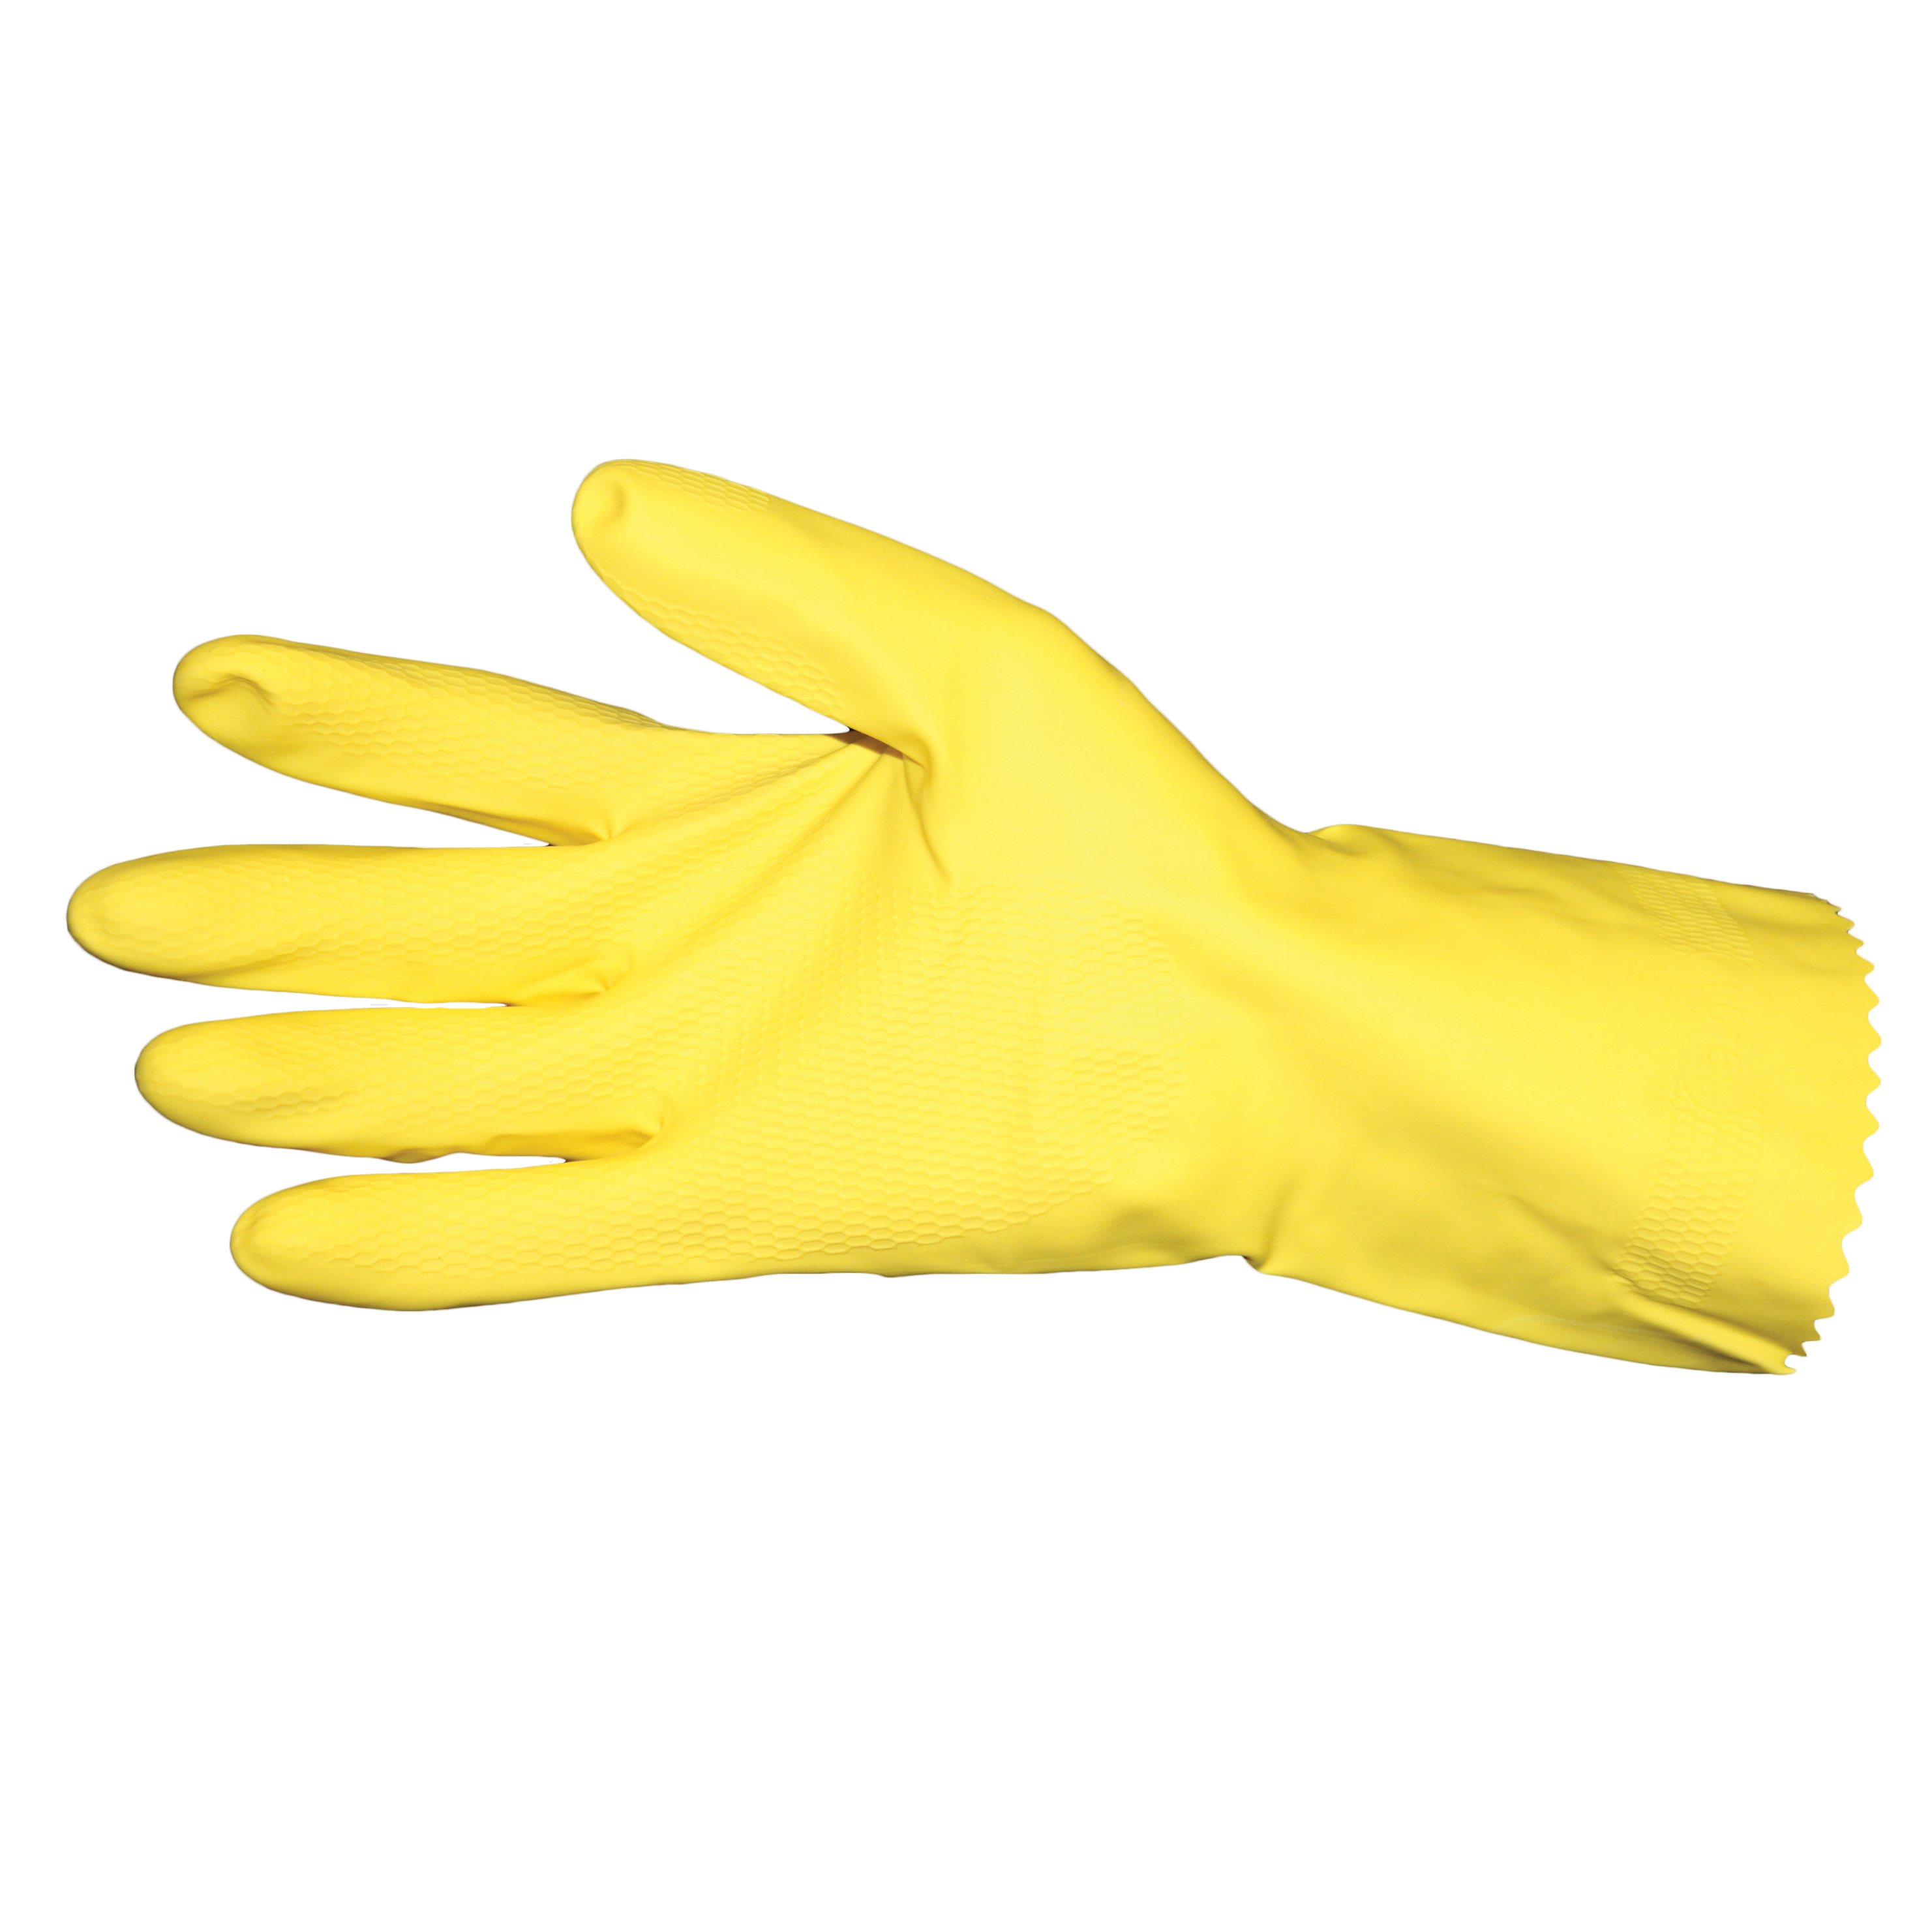 Impact Products 8449XL gloves, dishwashing / cleaning